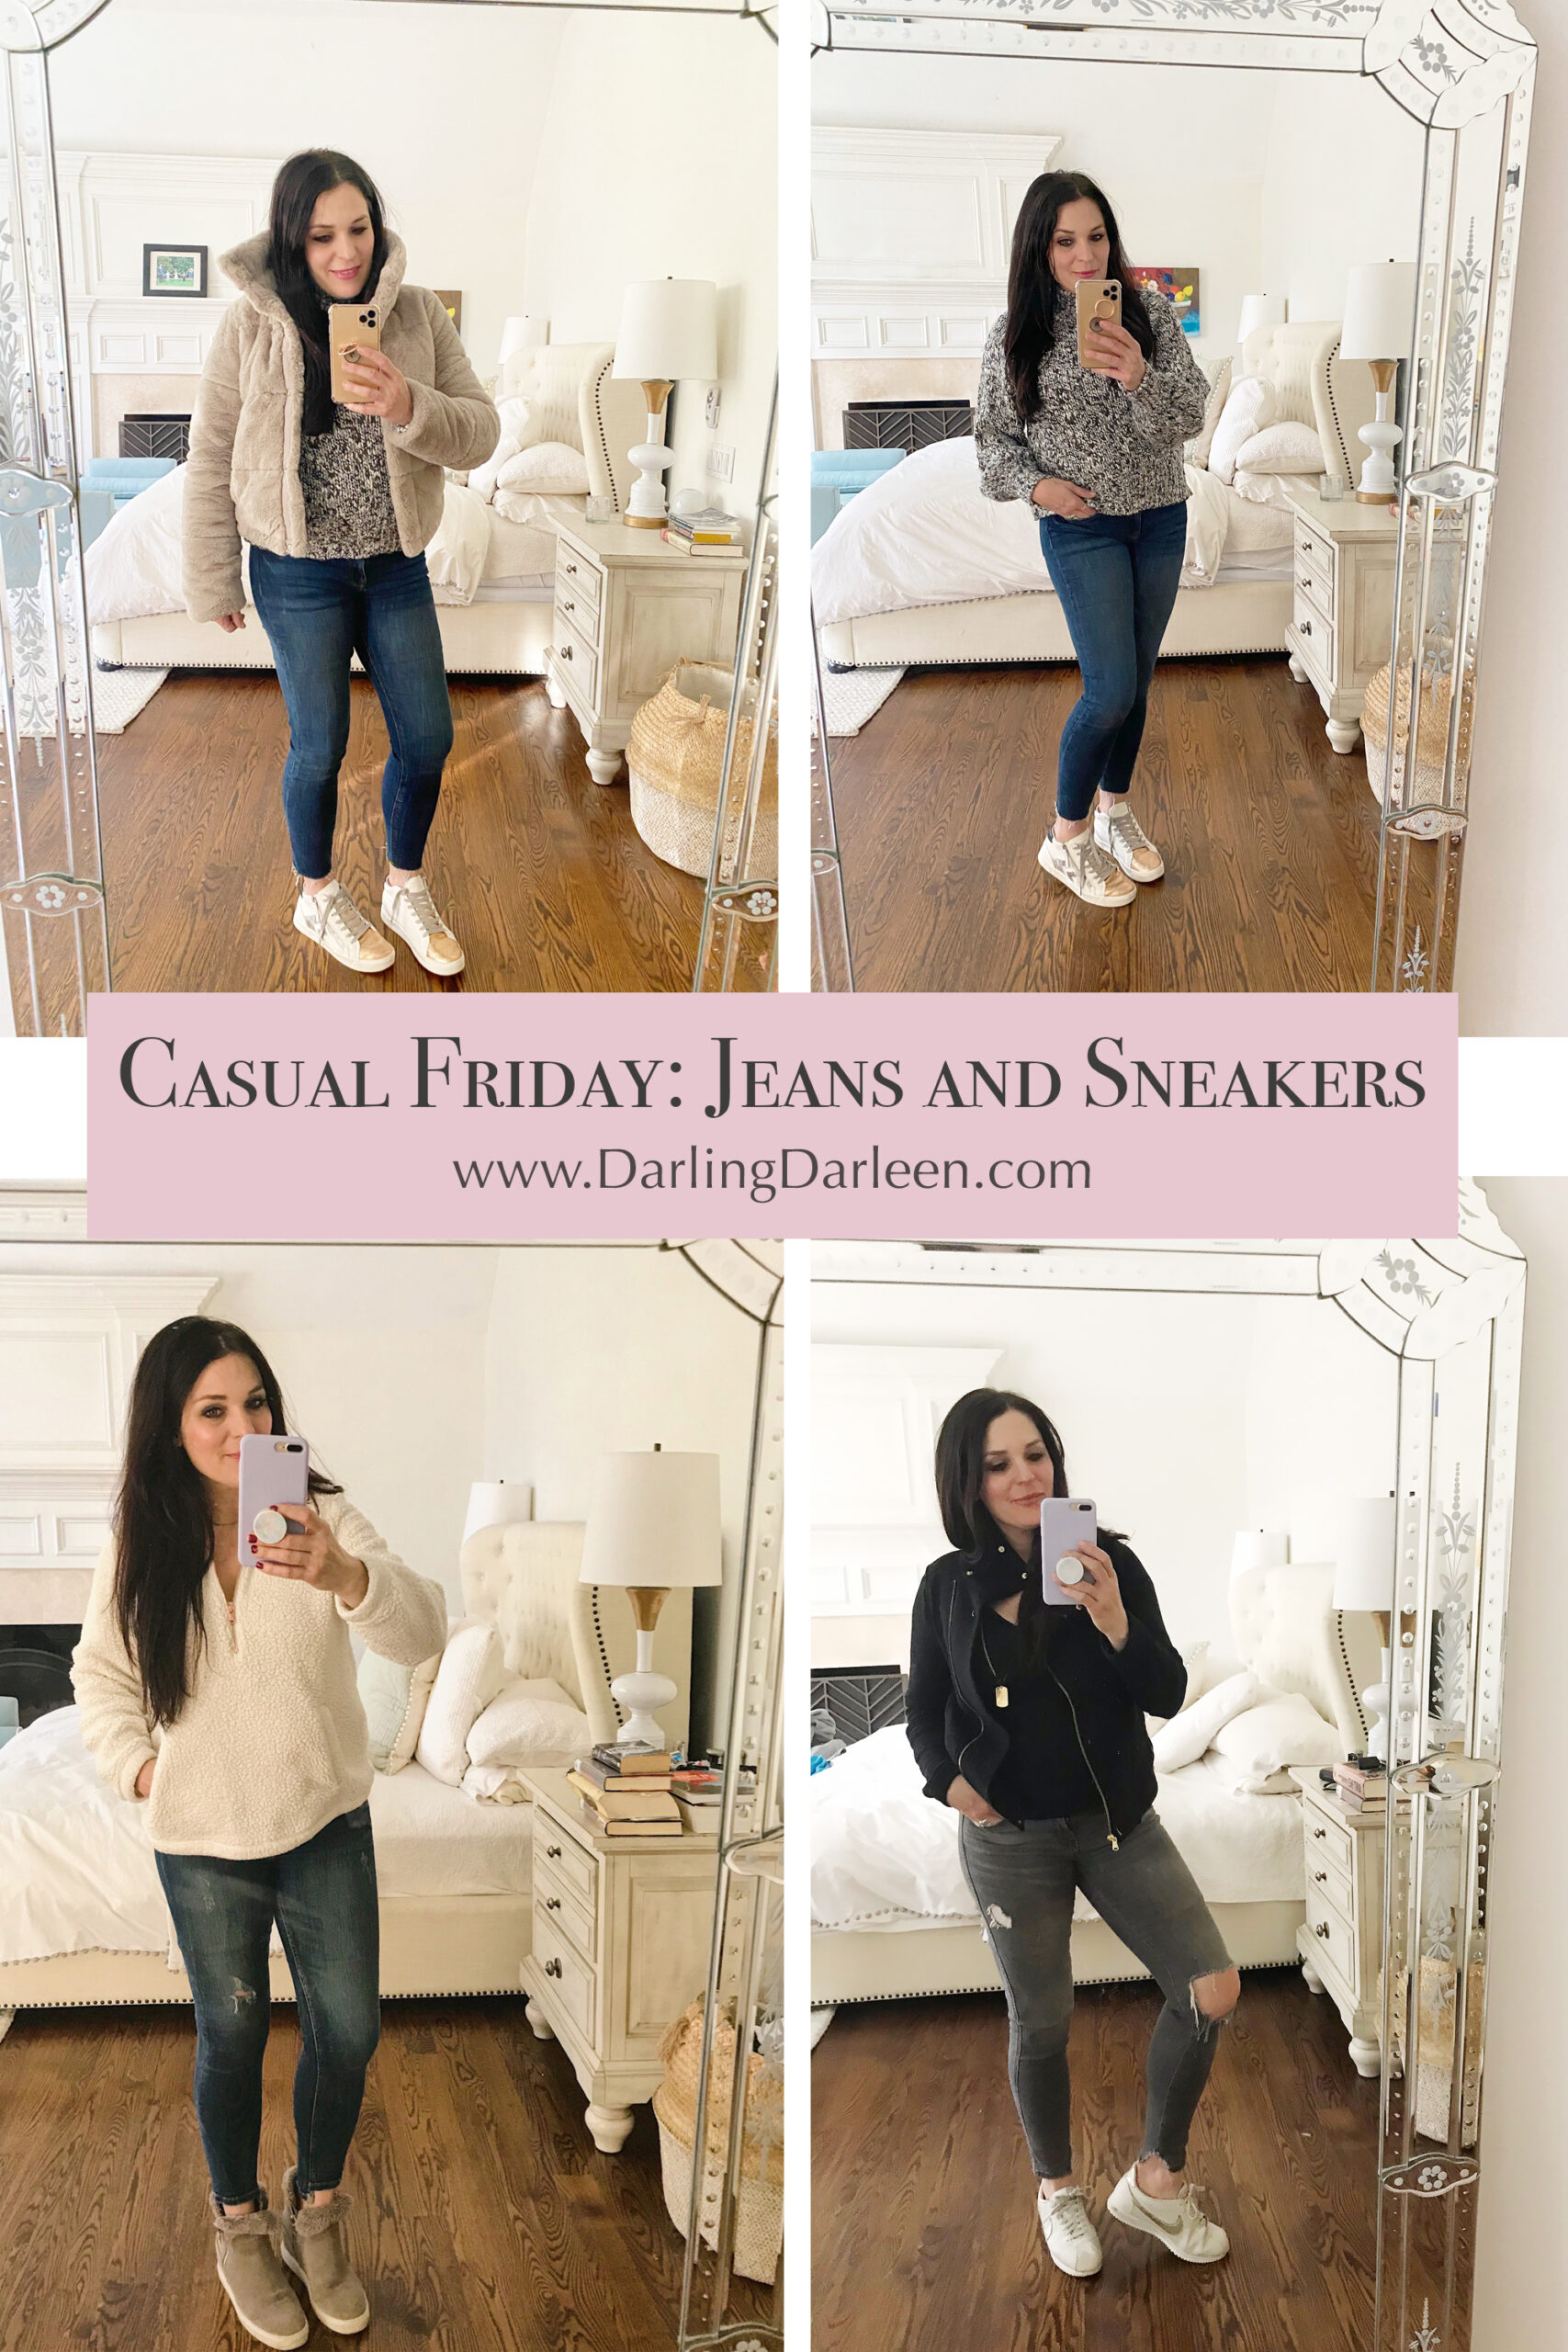 Snapits of my casual Friday jeans and sneakers winter edition, and sharing winter sales and how I am staying warm this winter.     Darling Darleen Top CT Lifestyle Blogger